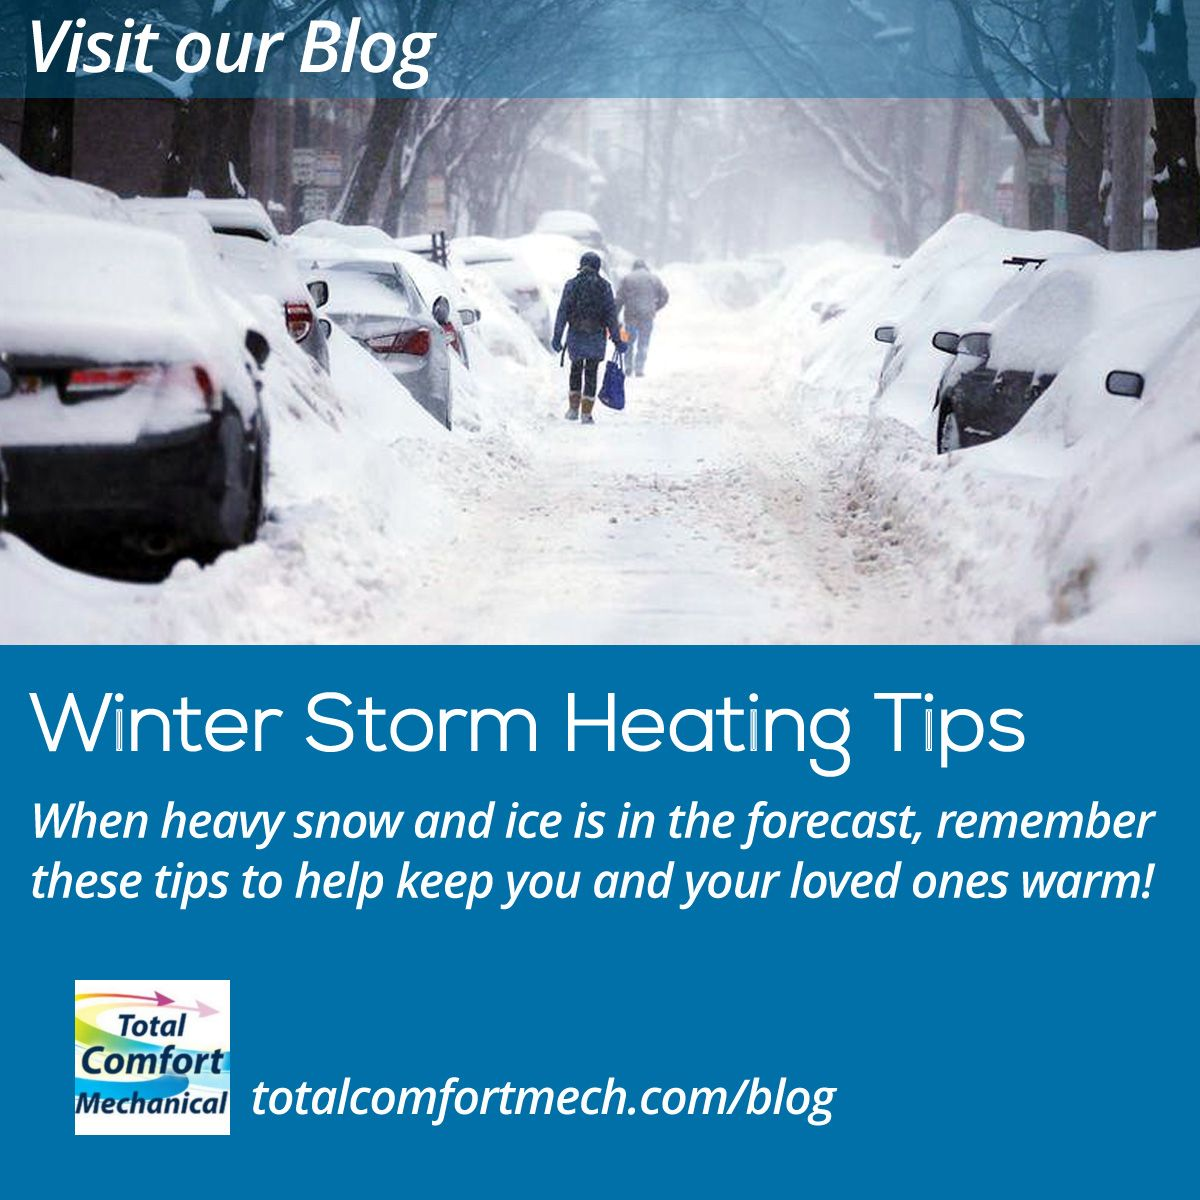 Winter Storm Heating Tips How To Stay Warm With Images Winter